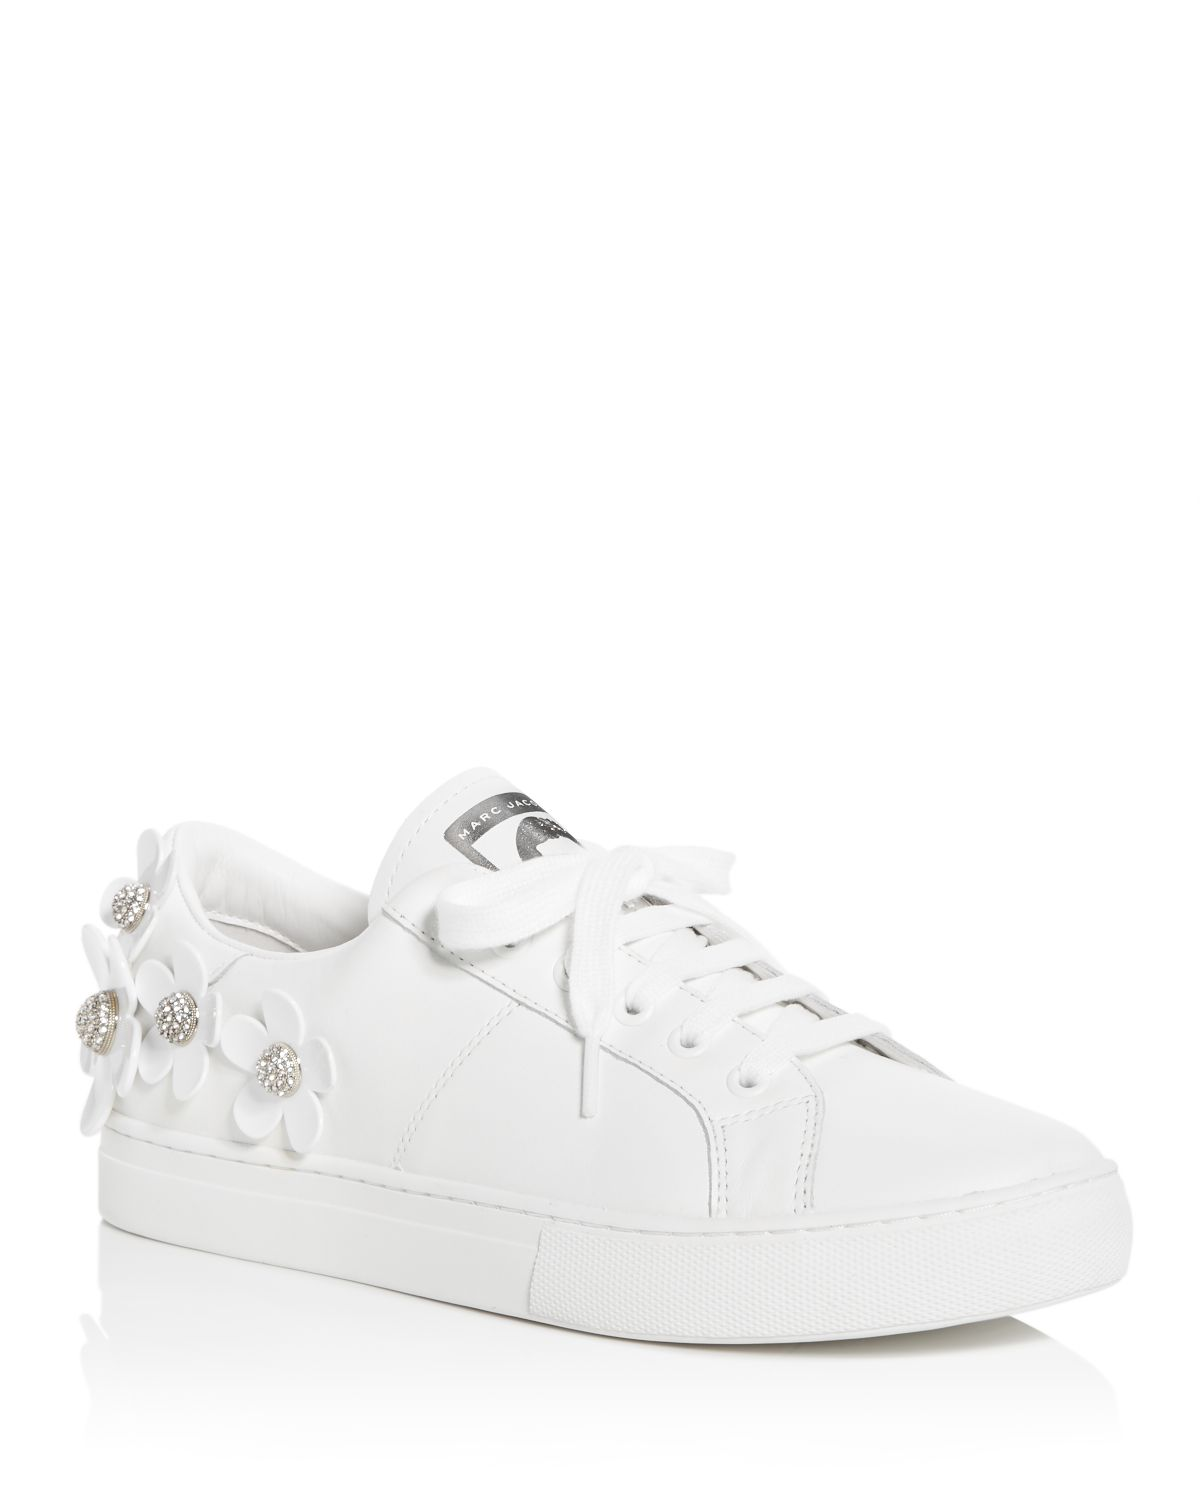 Marc Jacobs Women's Daisy Embellished Leather Lace Up Sneakers